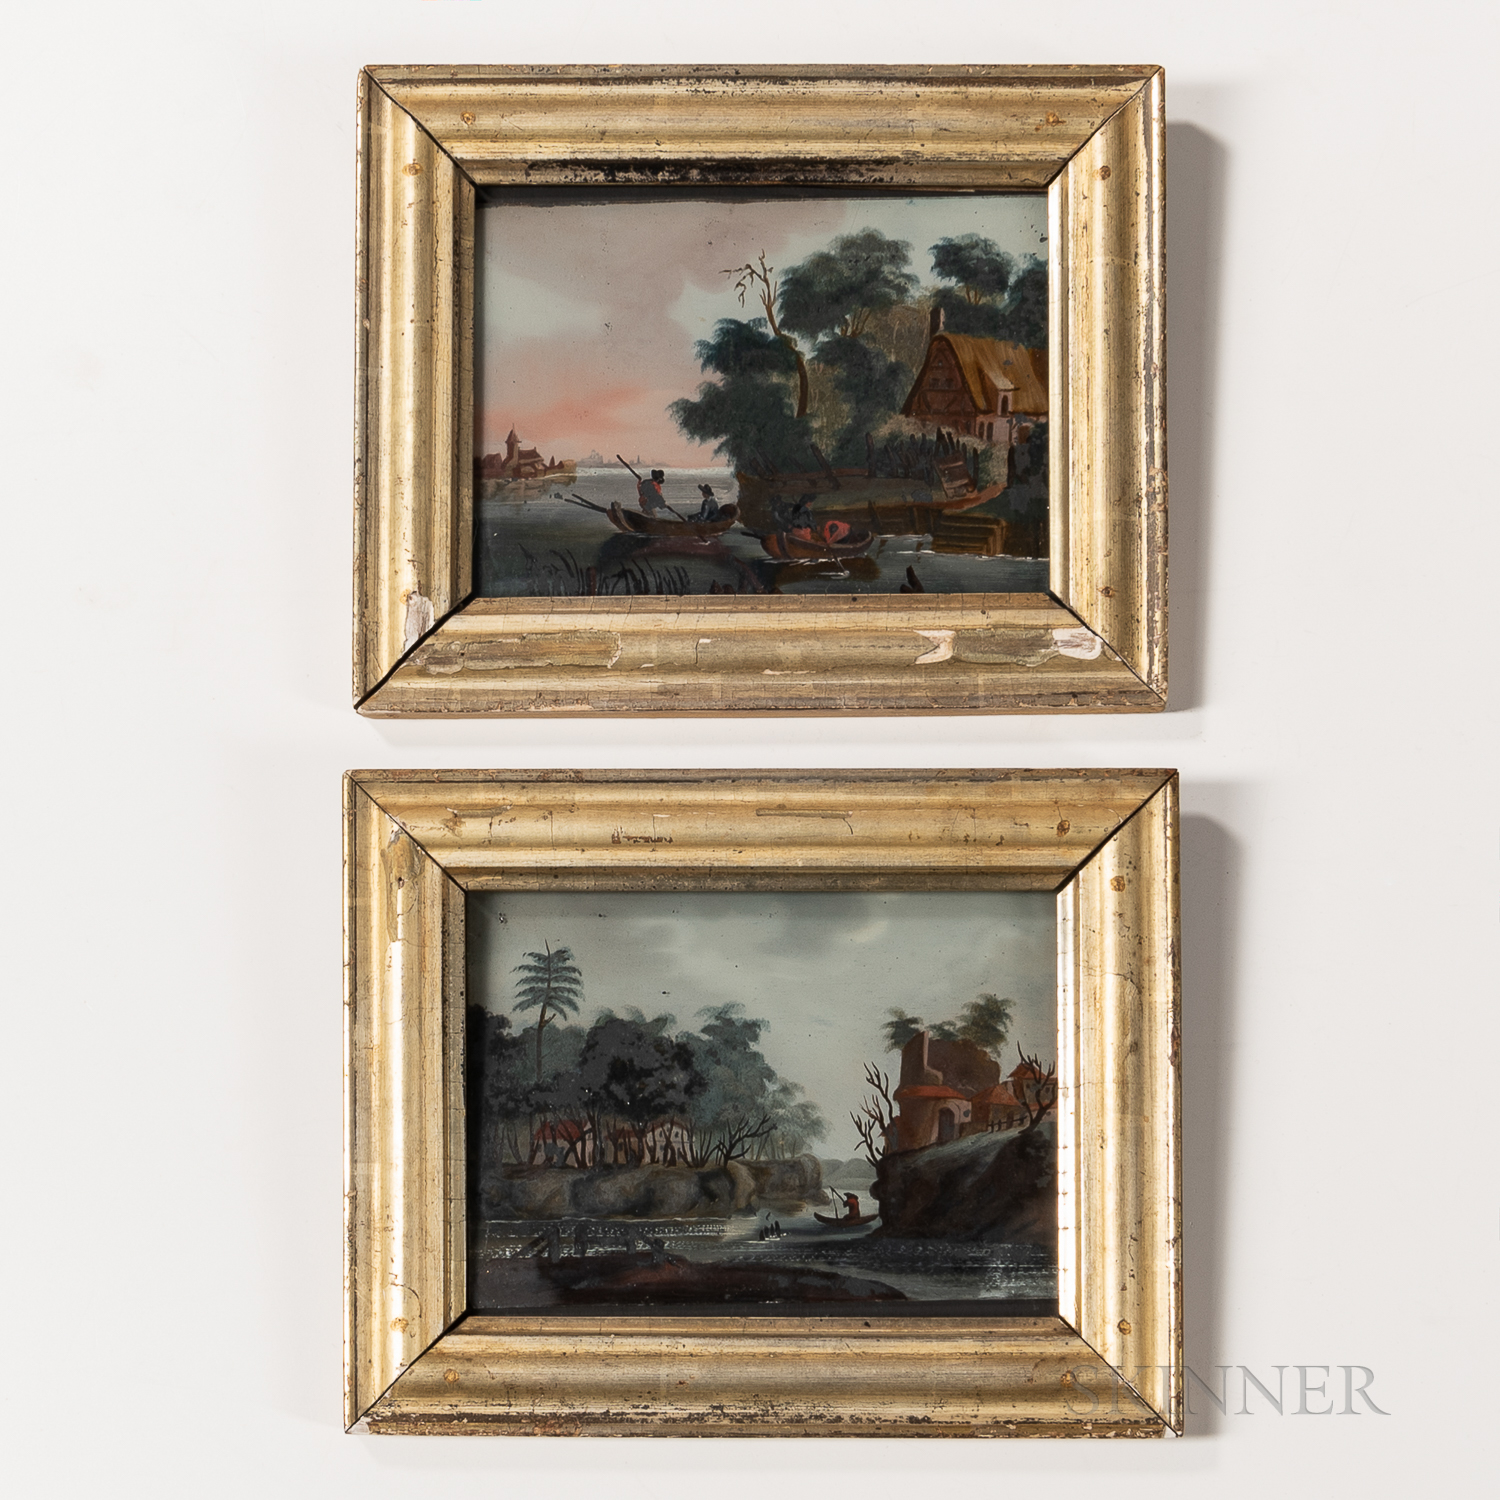 Pair of Framed Reverse-paintings on Glass